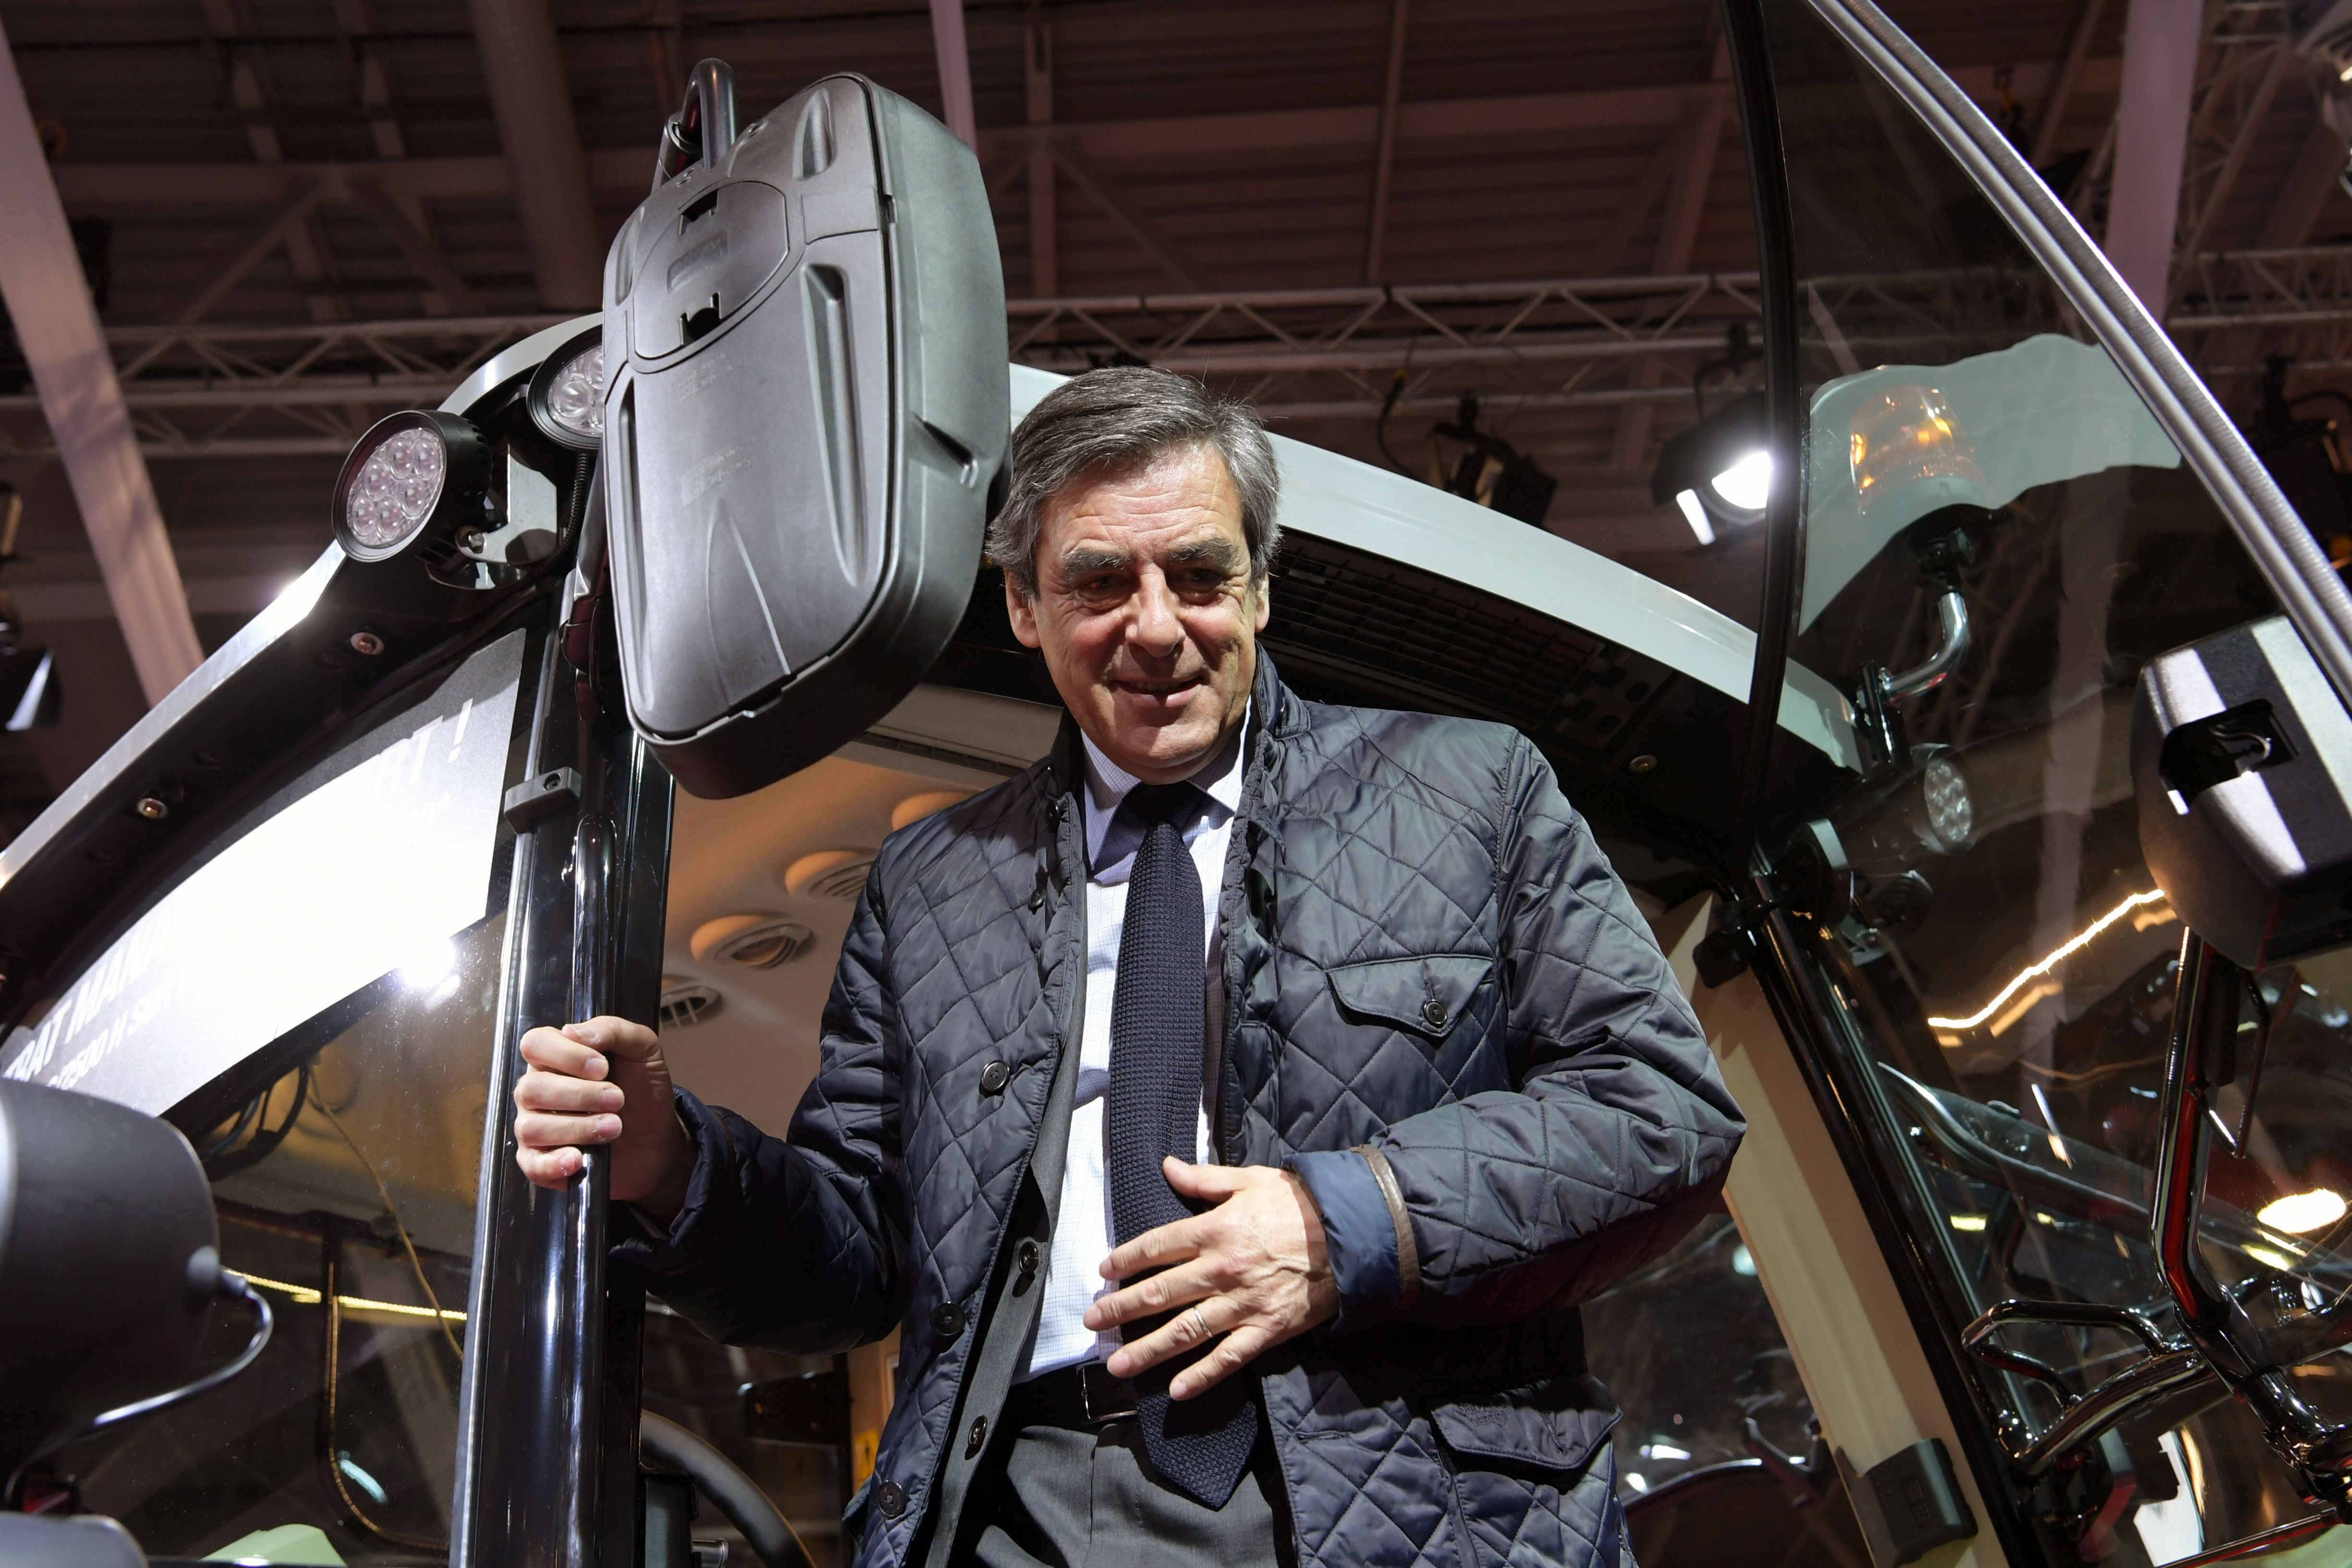 French presidential election candidate for the right-wing Les Republicains (LR) party Francois Fillon visits the SIMA (Mondial des Fournisseurs de l'Agriculture et de l'Elevage) on February 28, 2017 at the Parc des Expositions Paris Nord, in Villepinte.